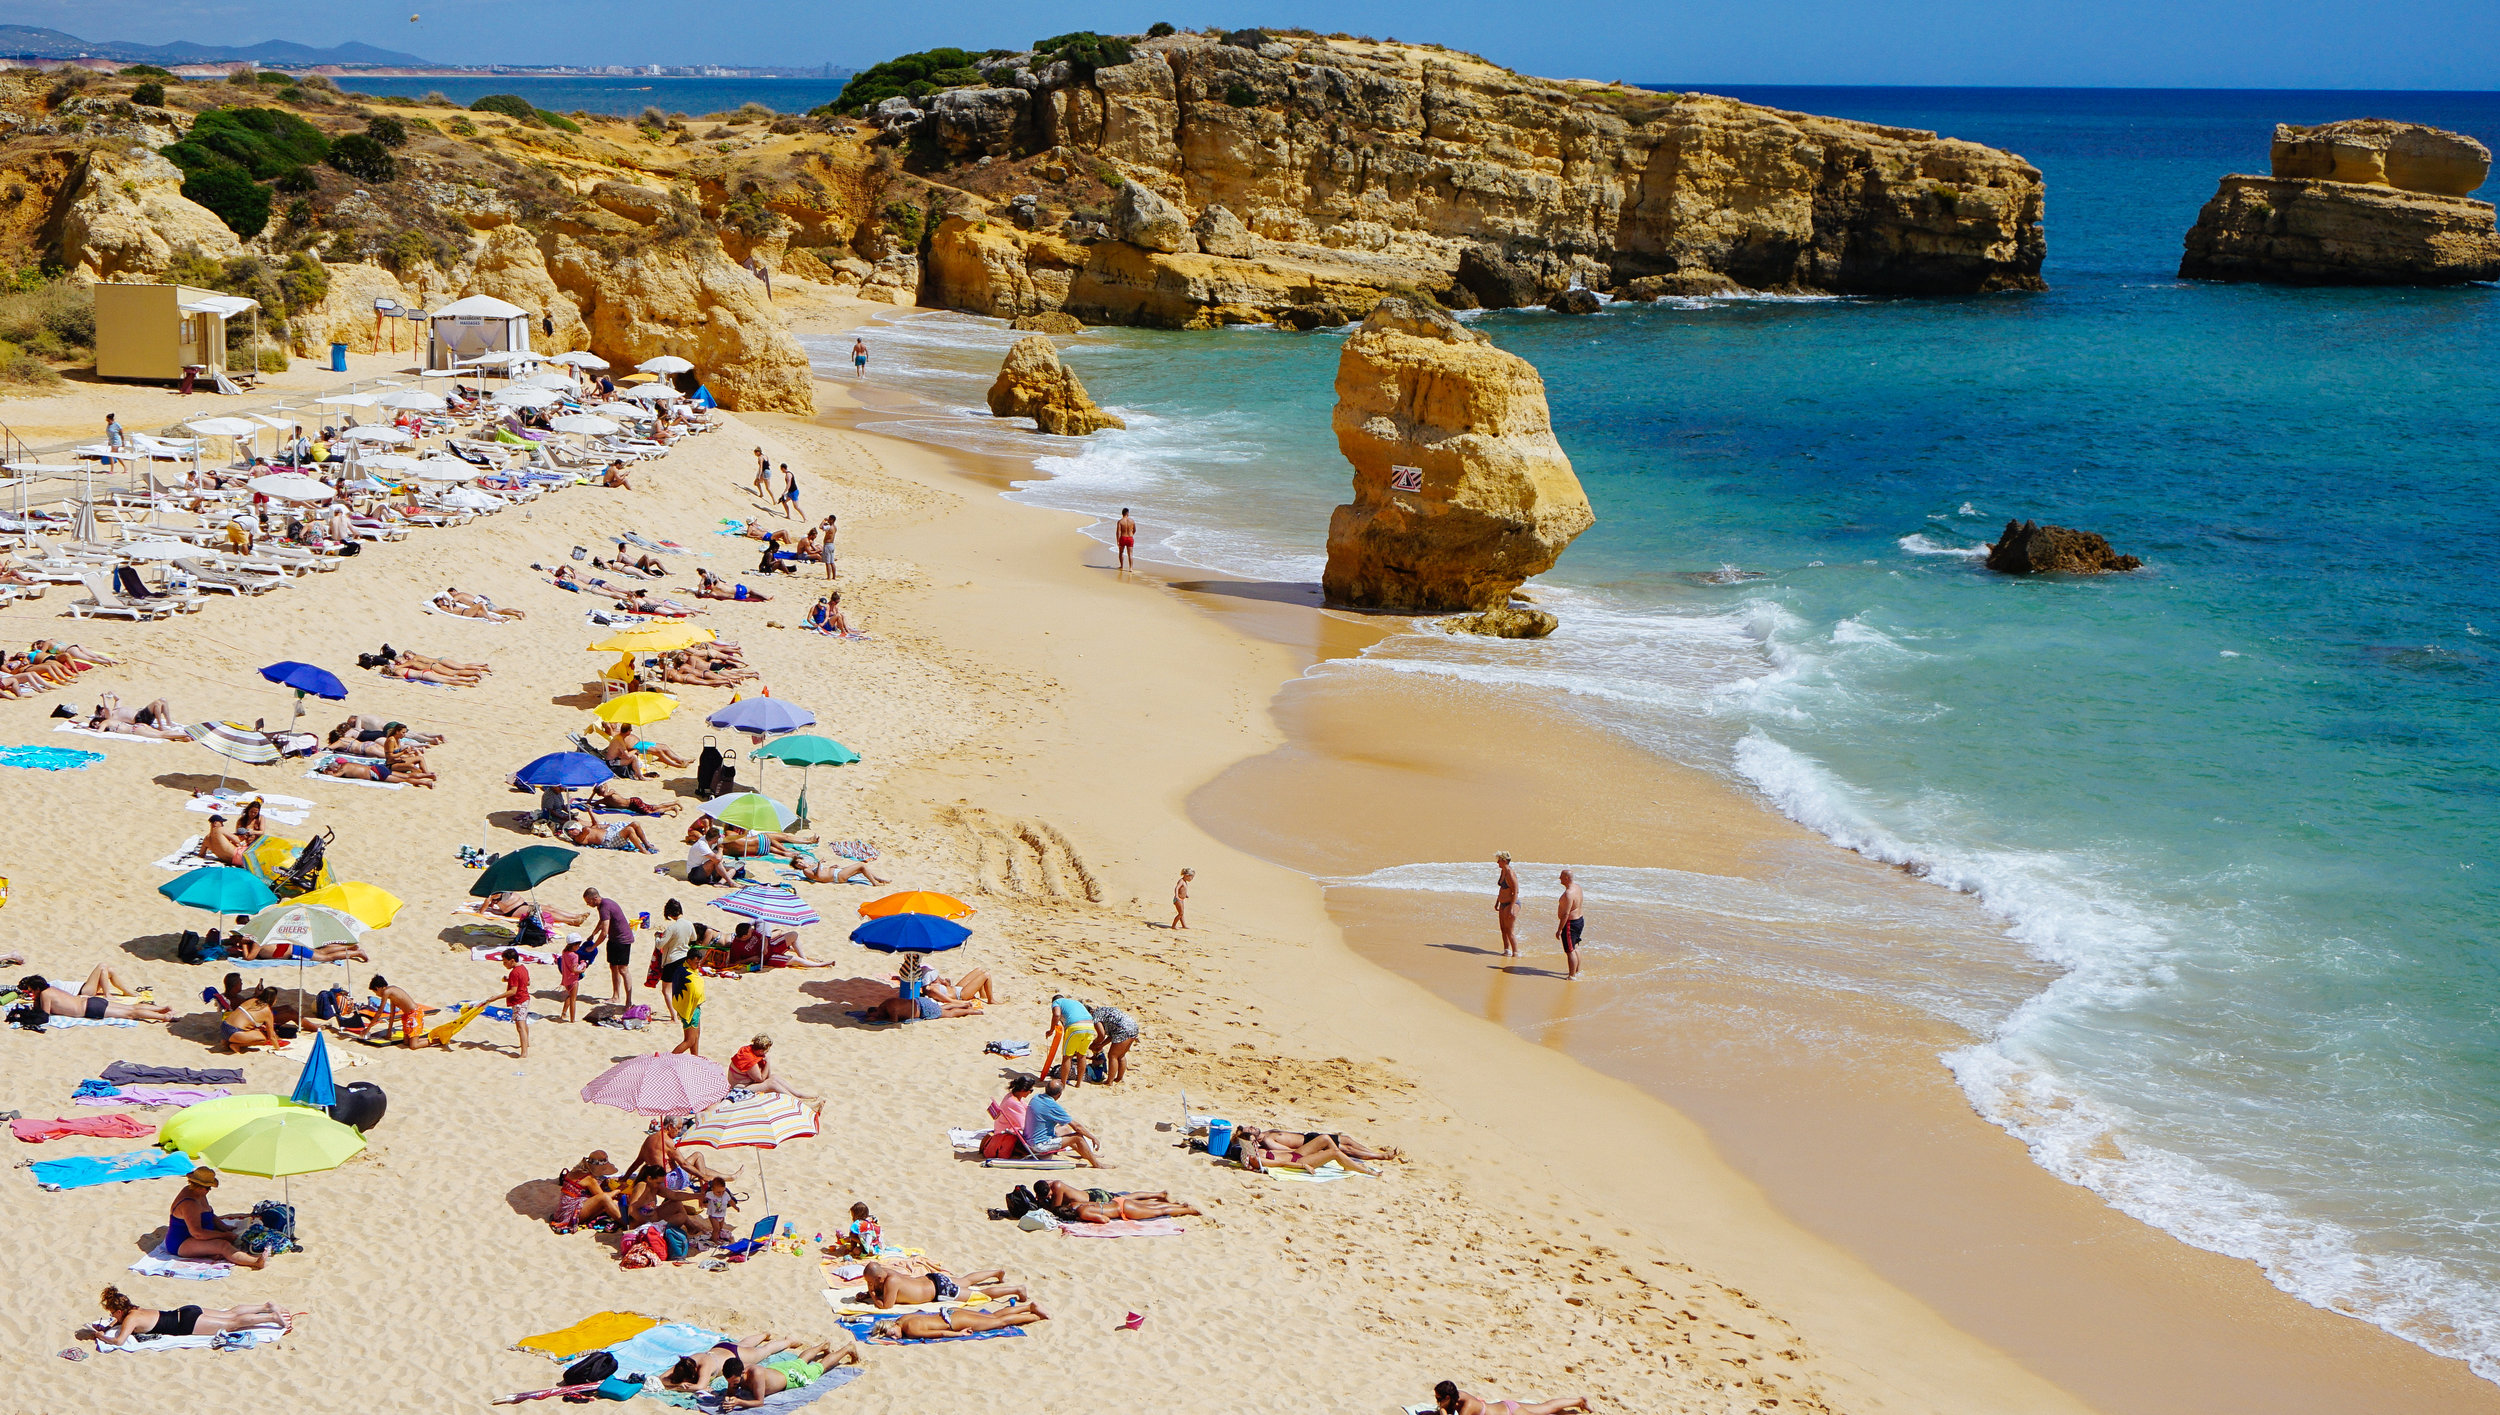 There are plenty of great beaches across the globe that can fit right in to a vacation on a budget!